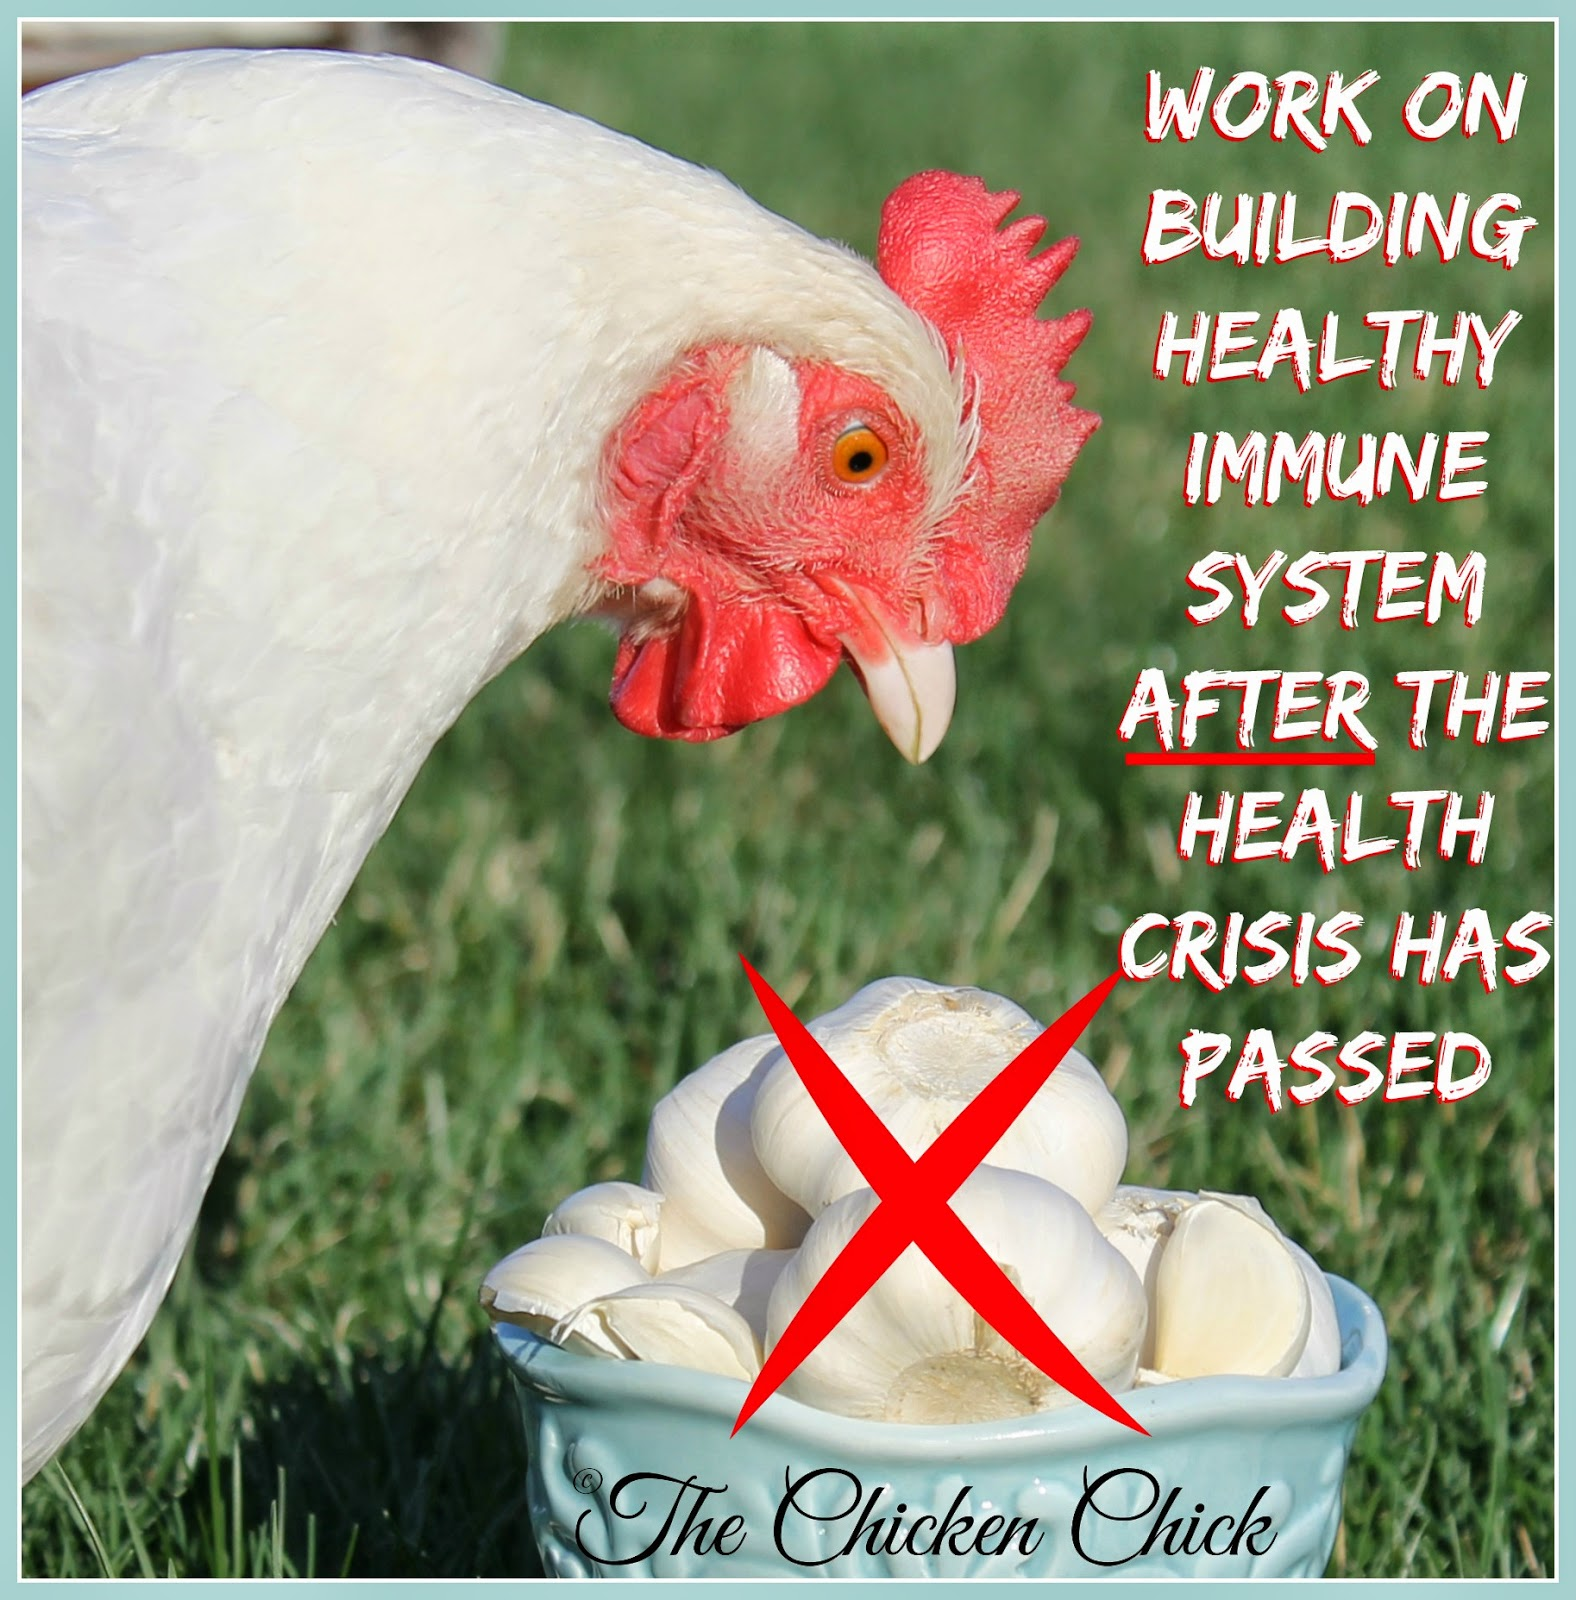 If herbal or other dietary supports have not already been a part of a chicken's regular routine, they should not be offered during an illness. Work on building a healthy immune system after the chicken's health crisis has passed.